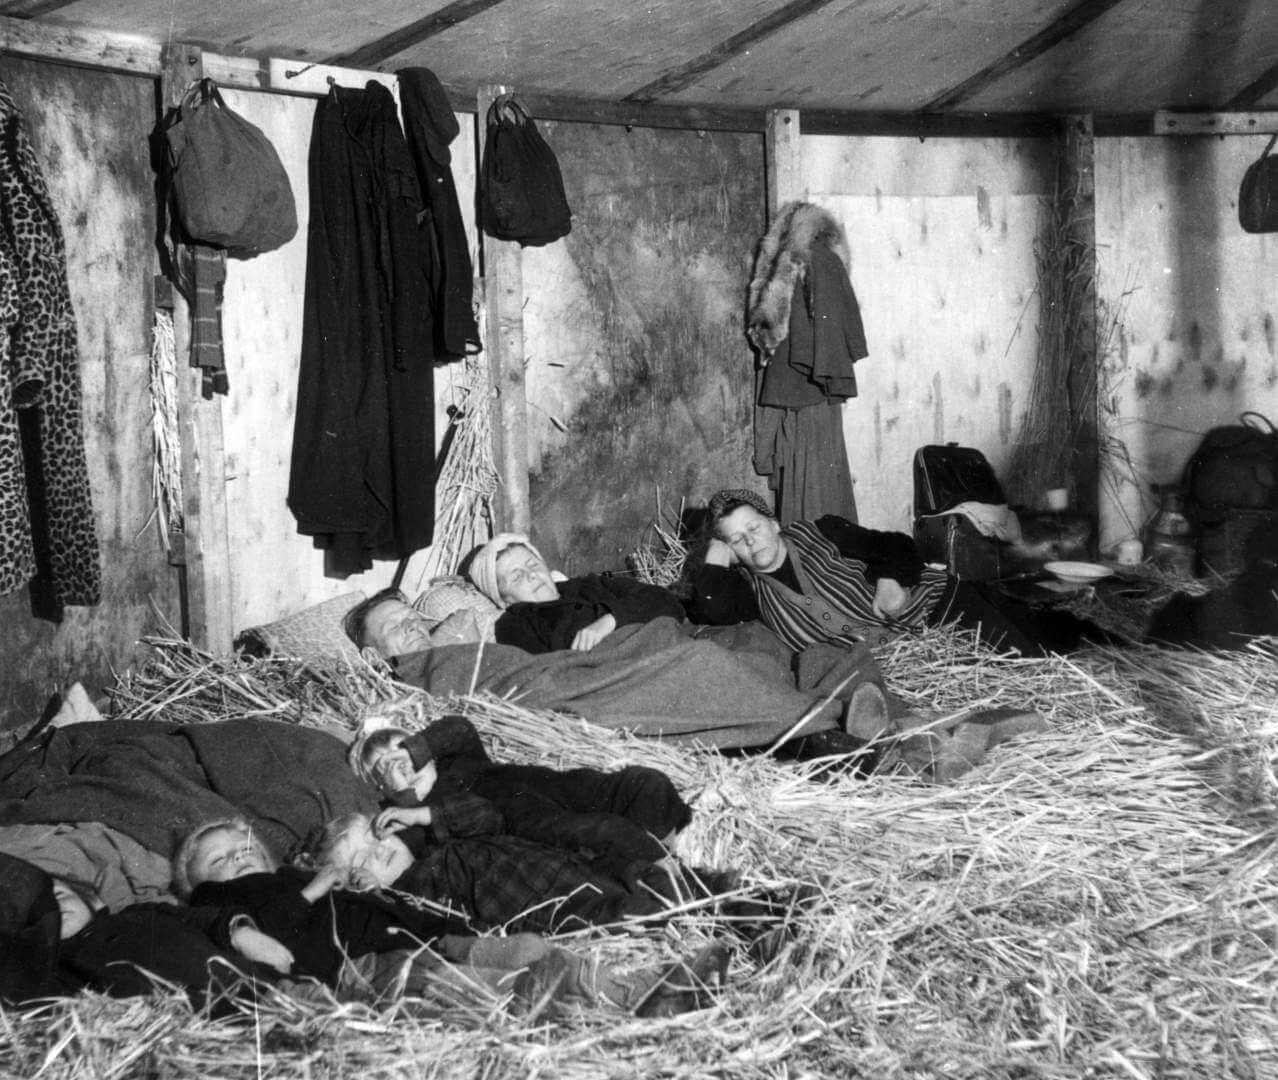 25th October 1945: German refugees fleeing from the Russian zone in the first few weeks after the end of World War II in Europe. They are sleeping on straw in a makeshift transit camp at Uelzen in the British zone of Germany. (Photo by Keystone/Getty Images)